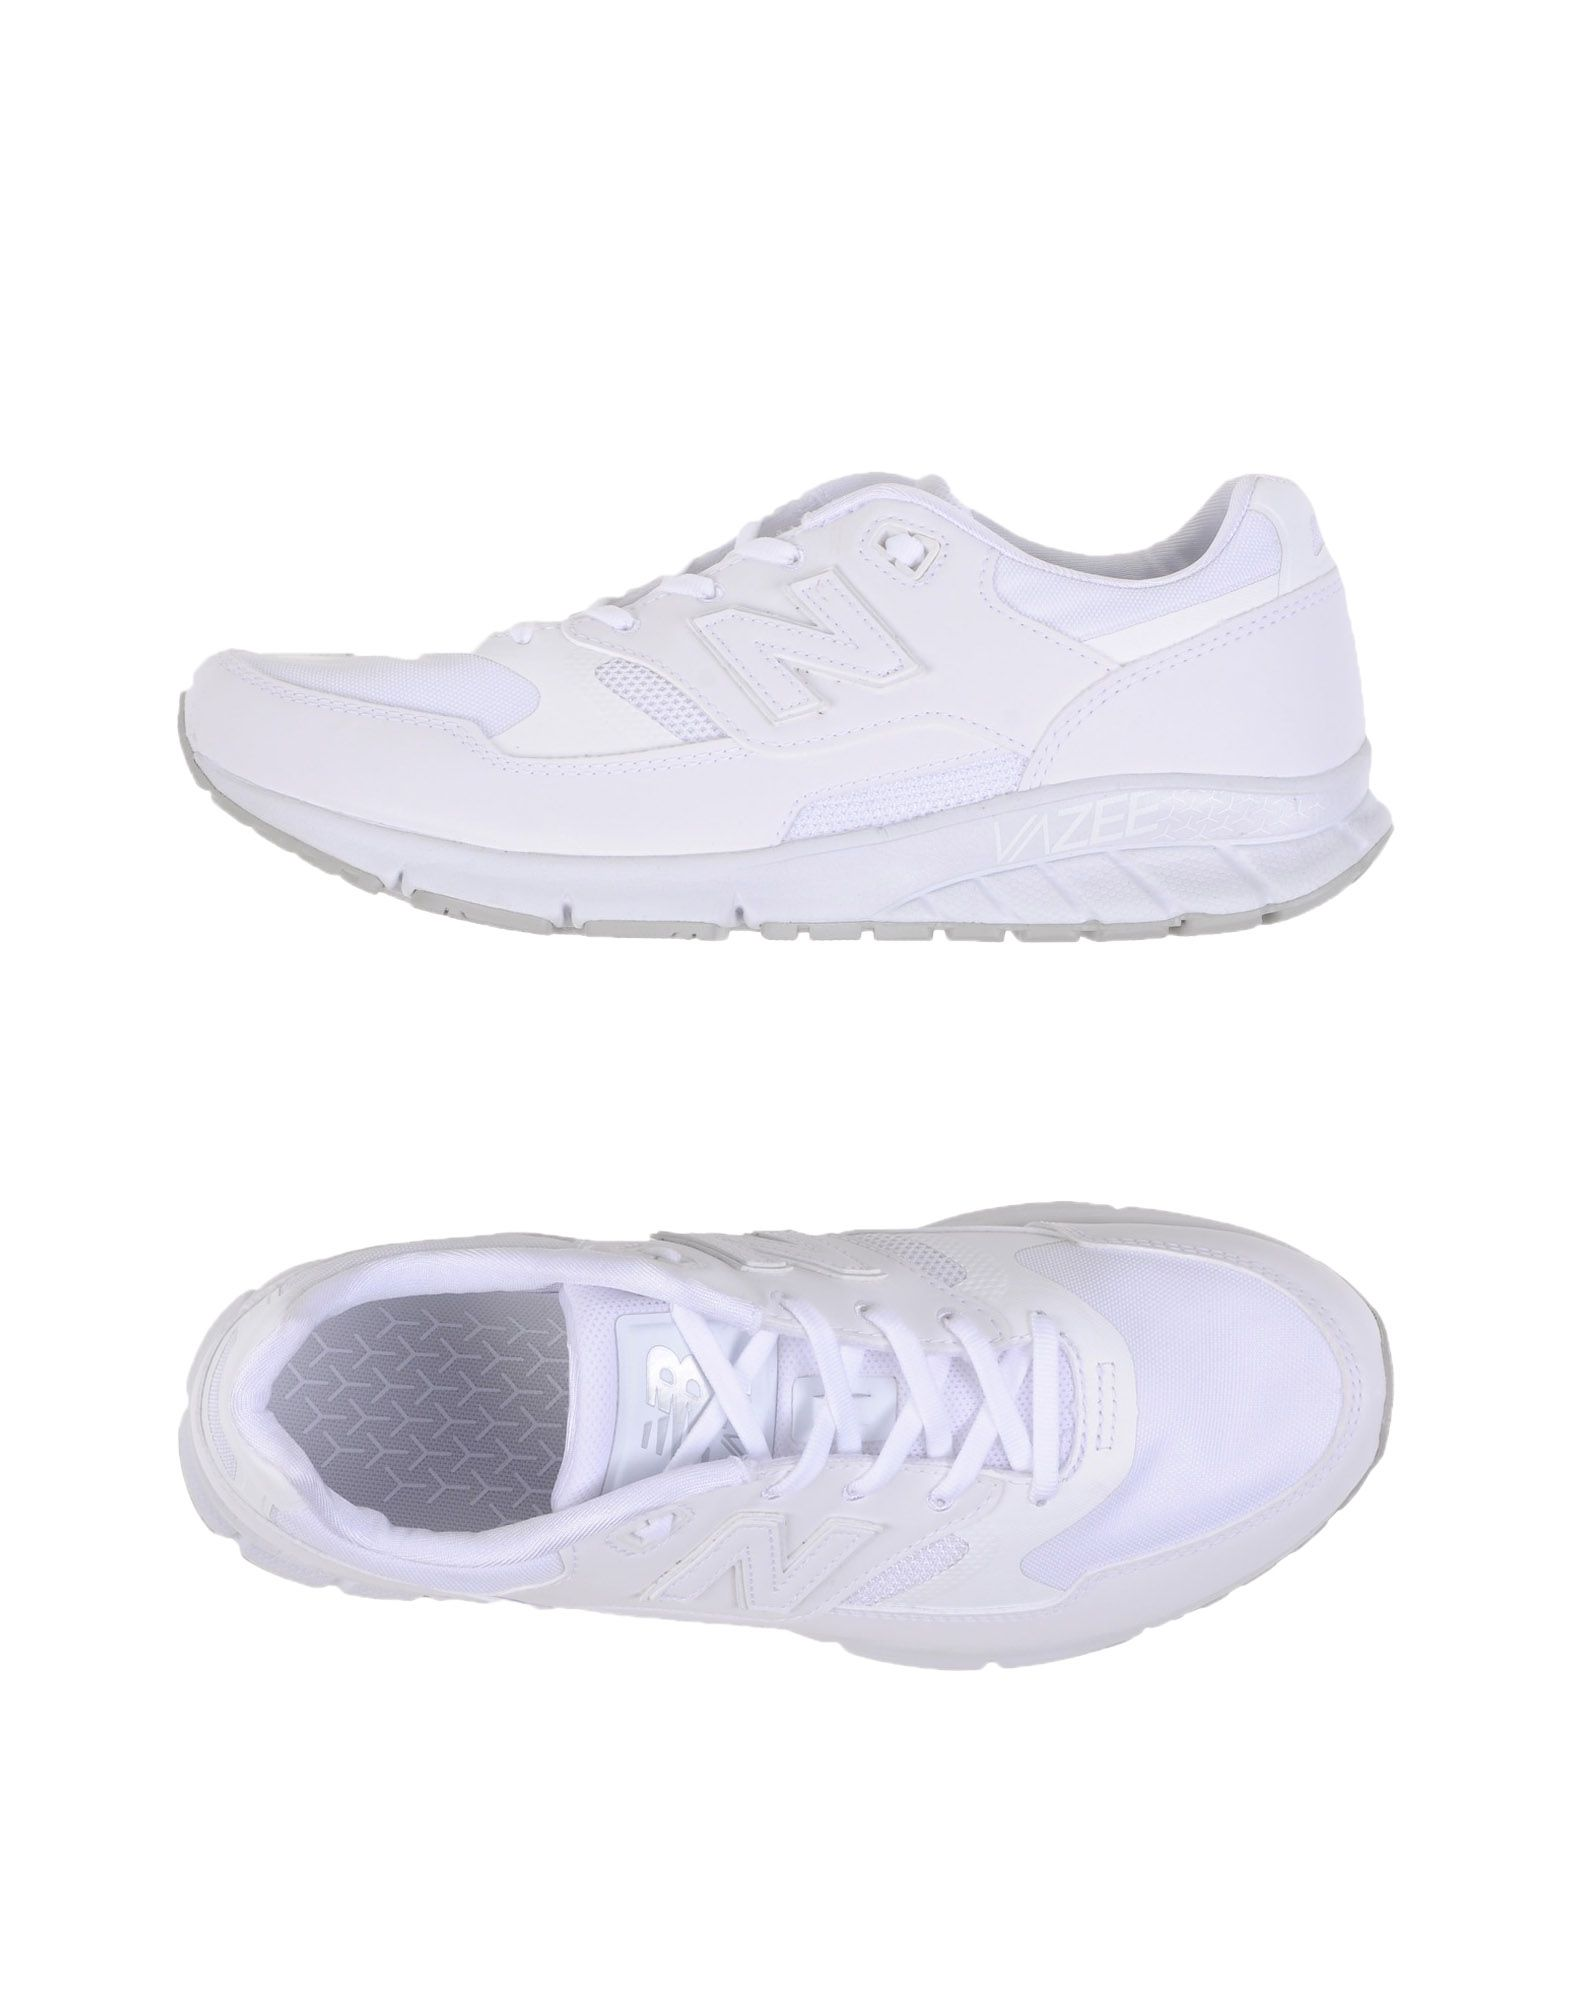 New Balance 530 Vazee Black And White New - Sneakers - Men New White Balance Sneakers online on  Australia - 11089085WI 4dc3e0